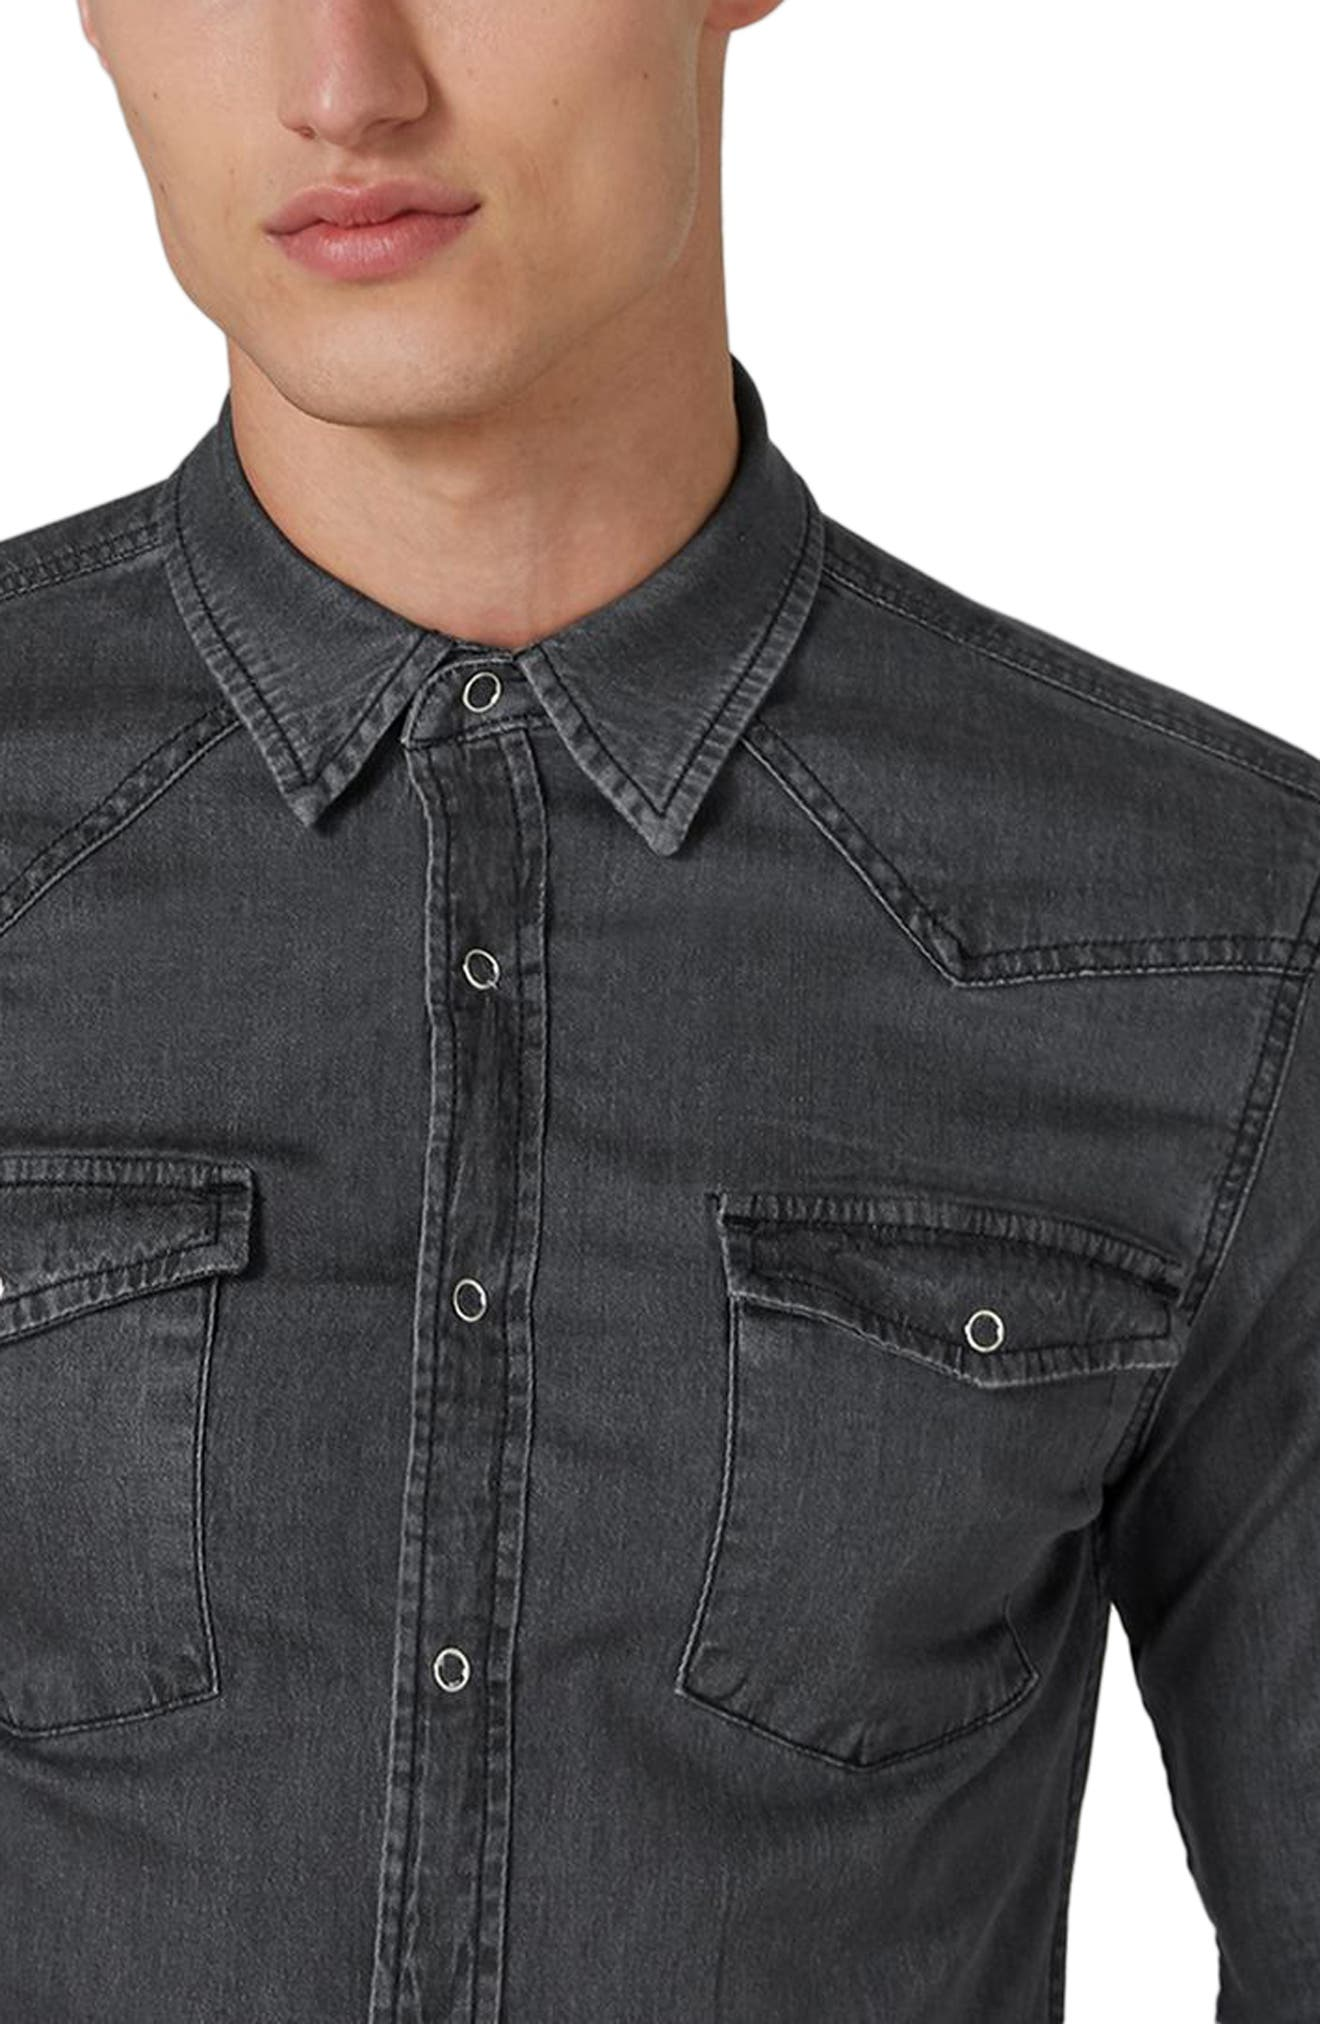 Muscle Fit Denim Western Shirt,                             Alternate thumbnail 3, color,                             Washed Black